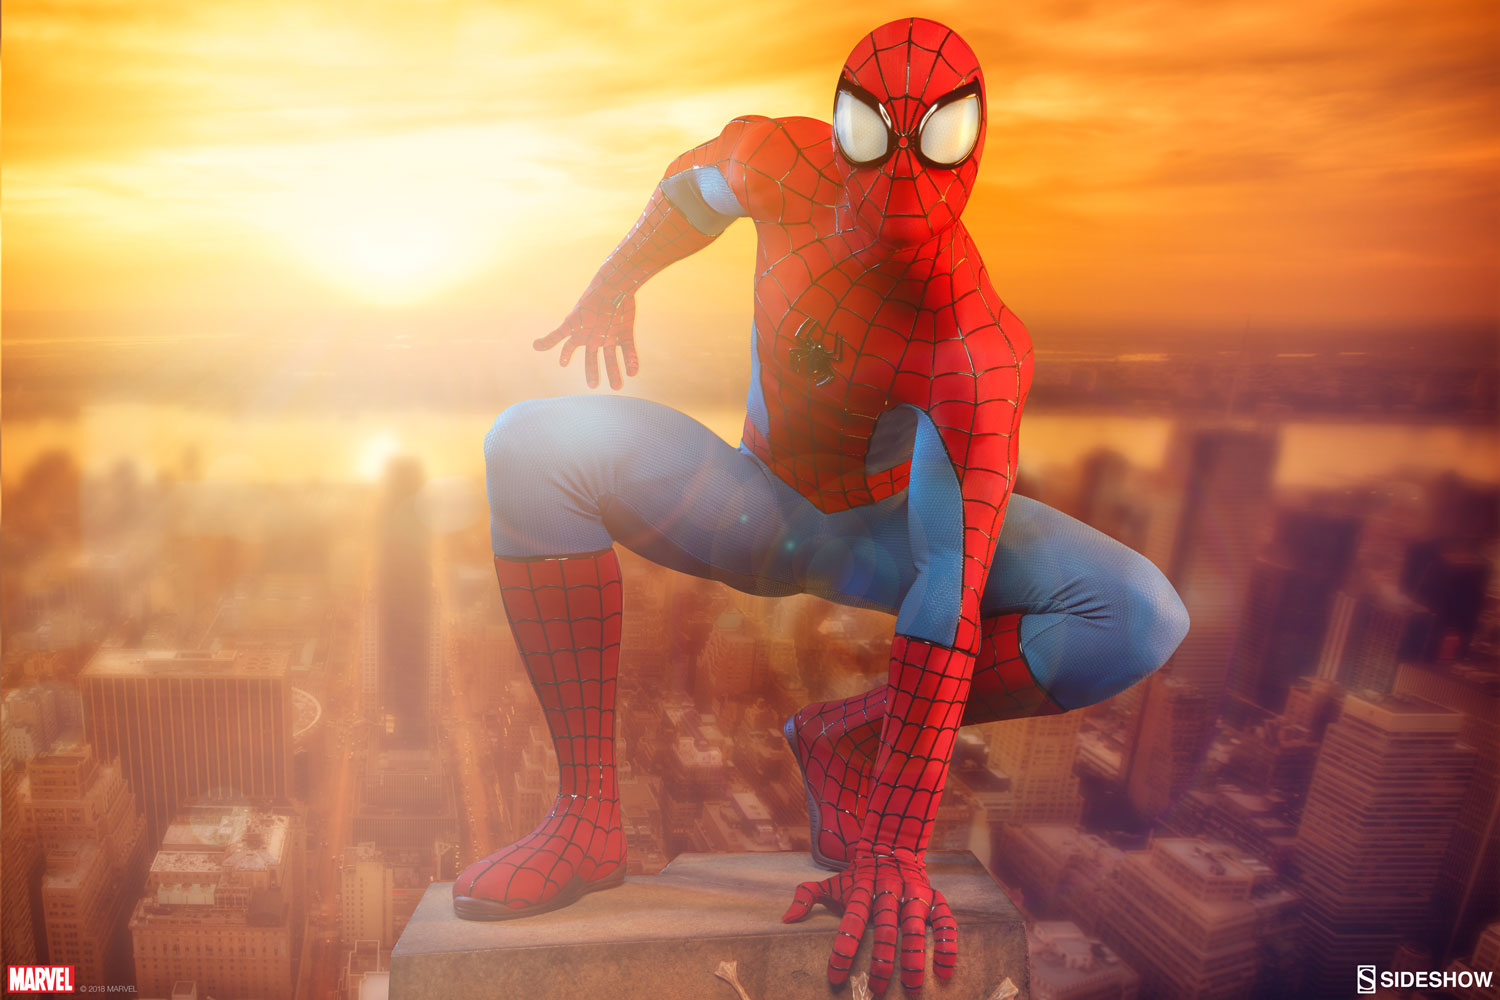 Spider-Man Legendary Scale Figure by Sideshow Collectibles